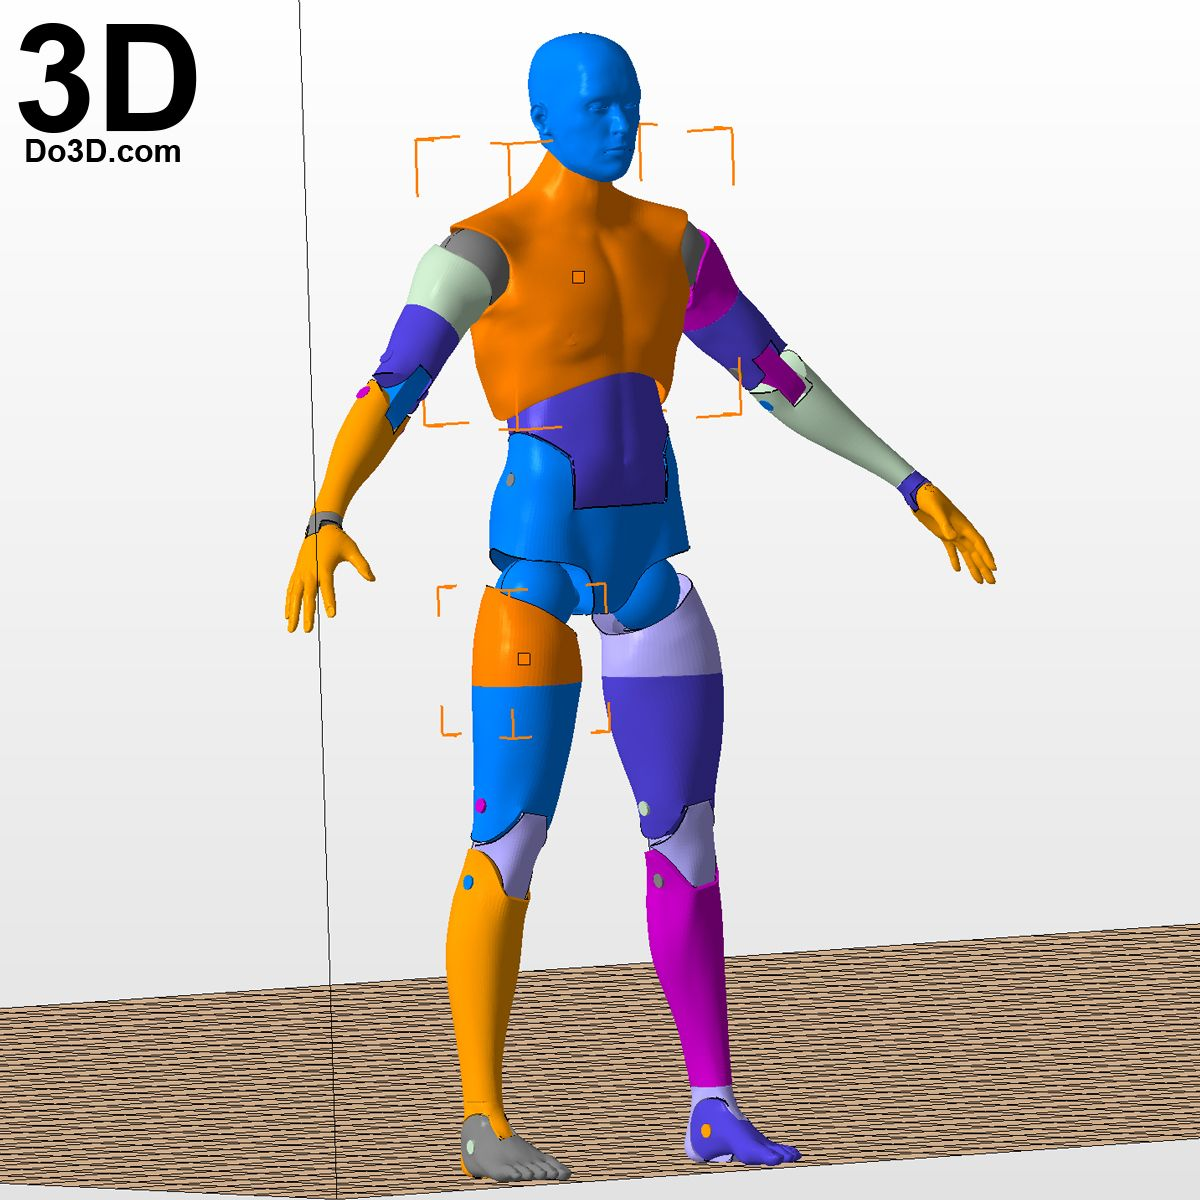 3D Printable Toy: Articulated Action Figure Full Body